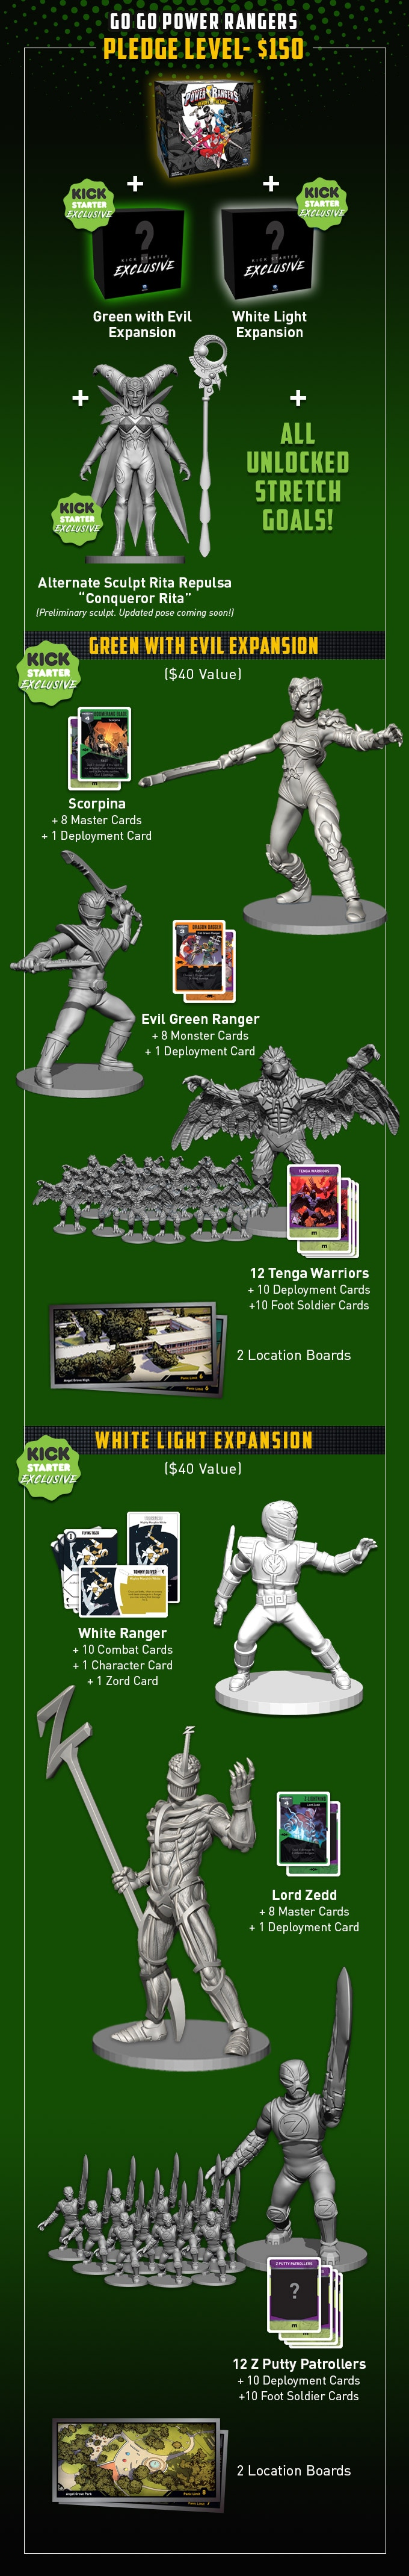 Power Rangers_Heroes of the Grid_kickstarter goals_base set (4)